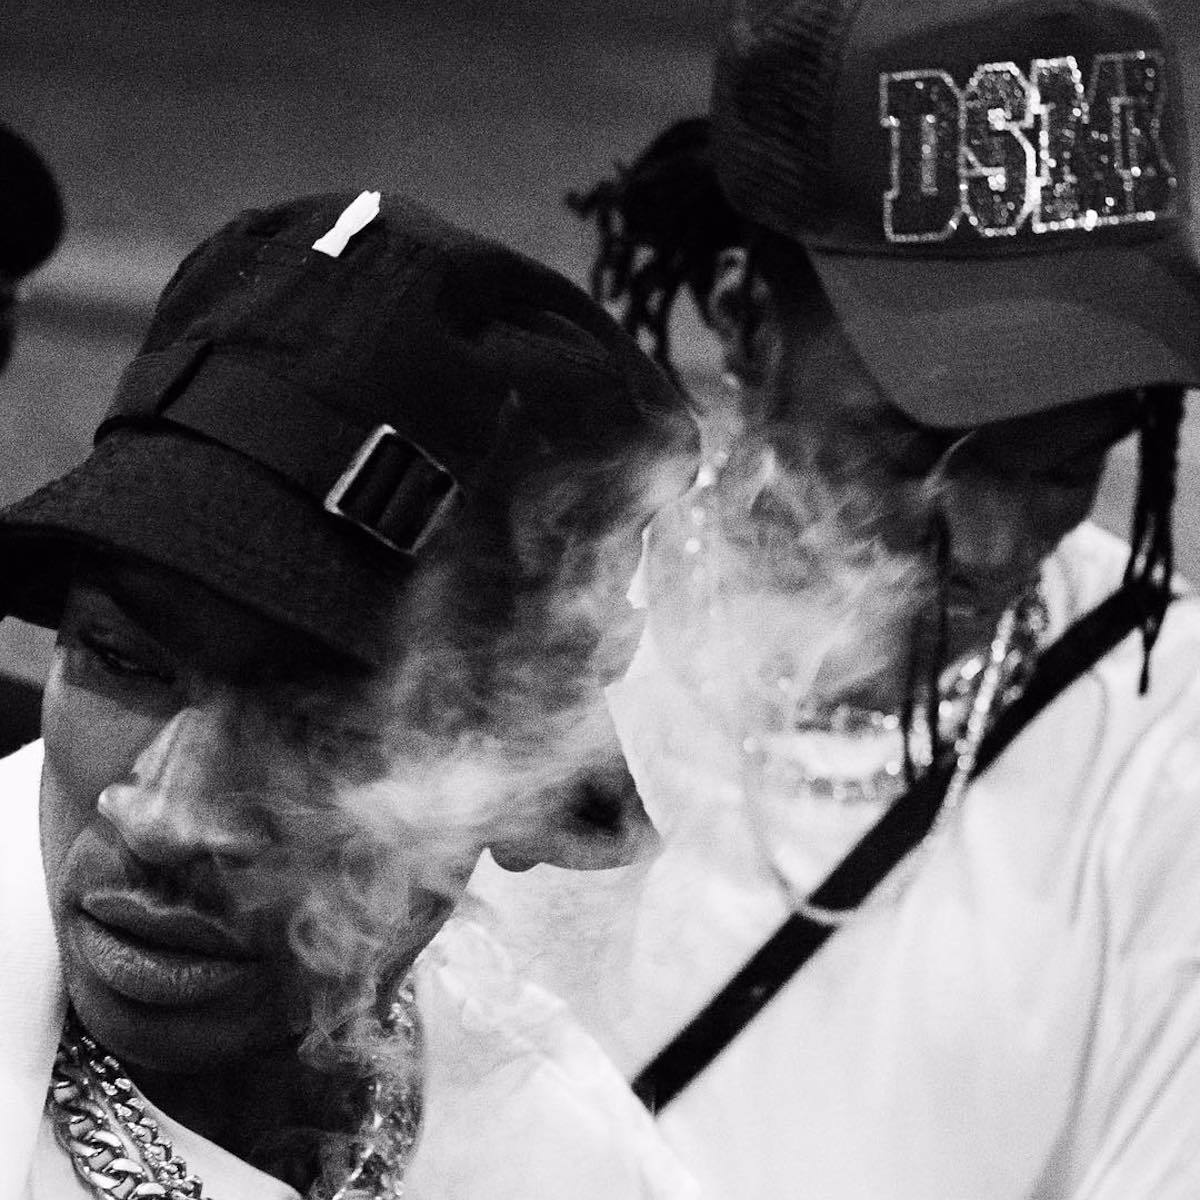 """Lancey Fouxx Releases Trippy Visuals For """"DYED 2WICE"""" Alongside Skepta"""